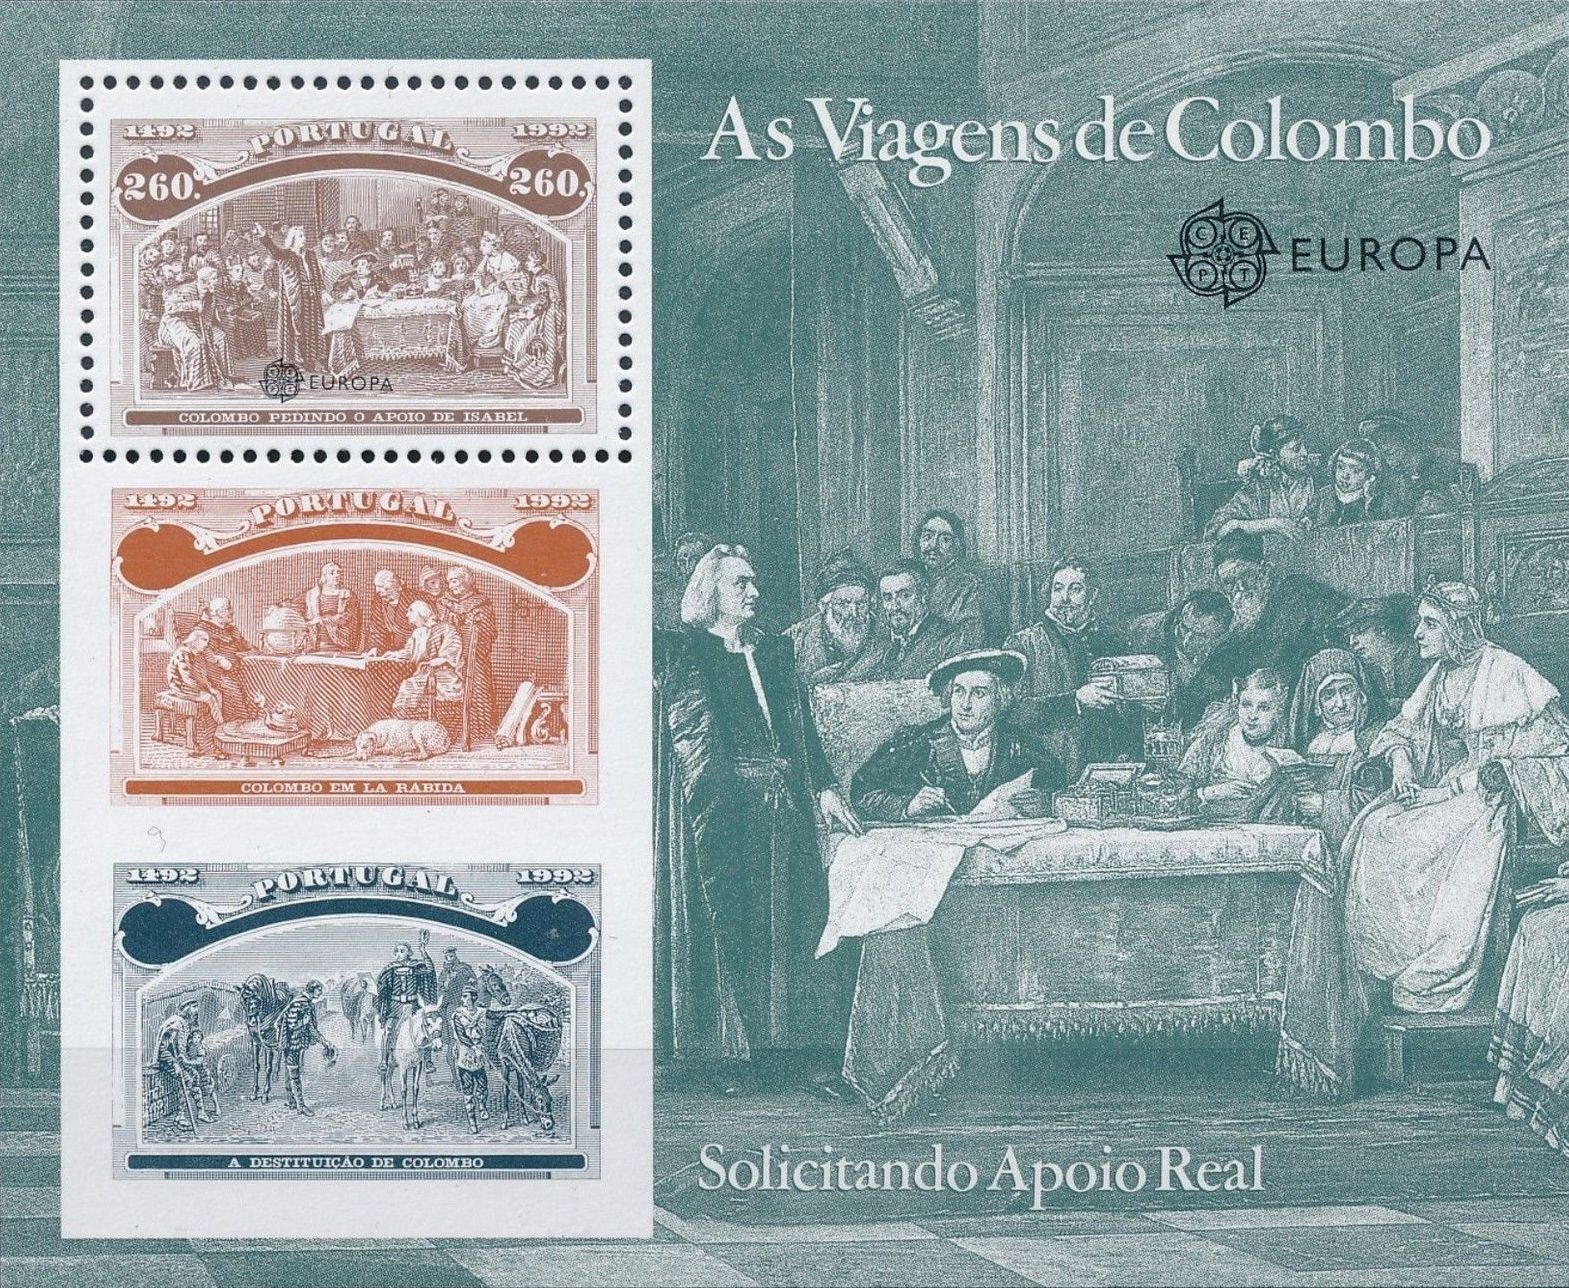 Portugal 1992 500th Anniversary of the Discovery of America SSa.jpg